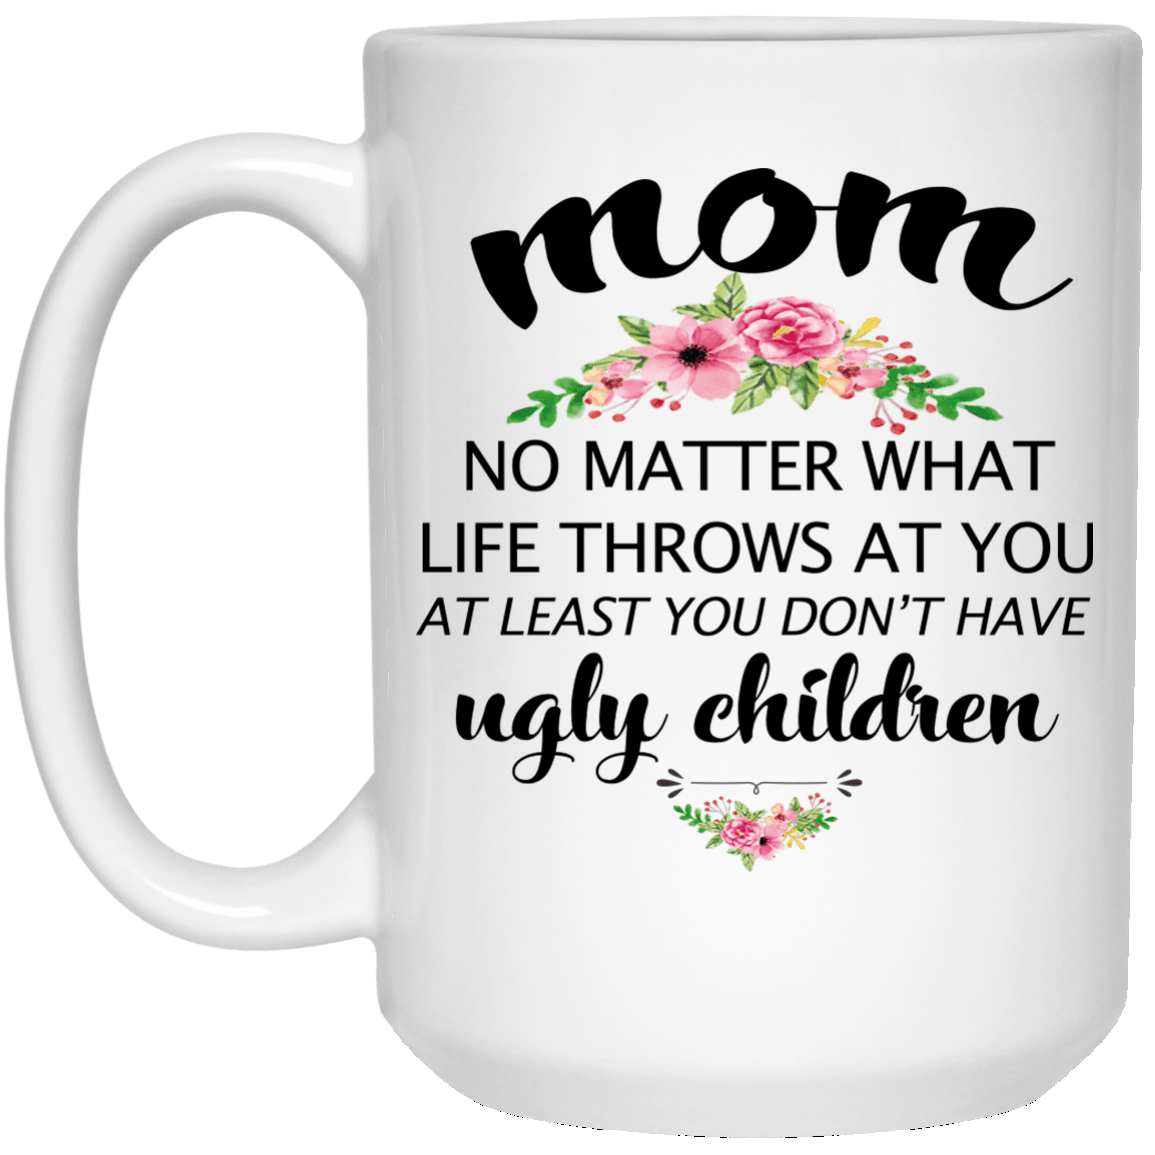 image 22 - At least you don't have ugly children mug